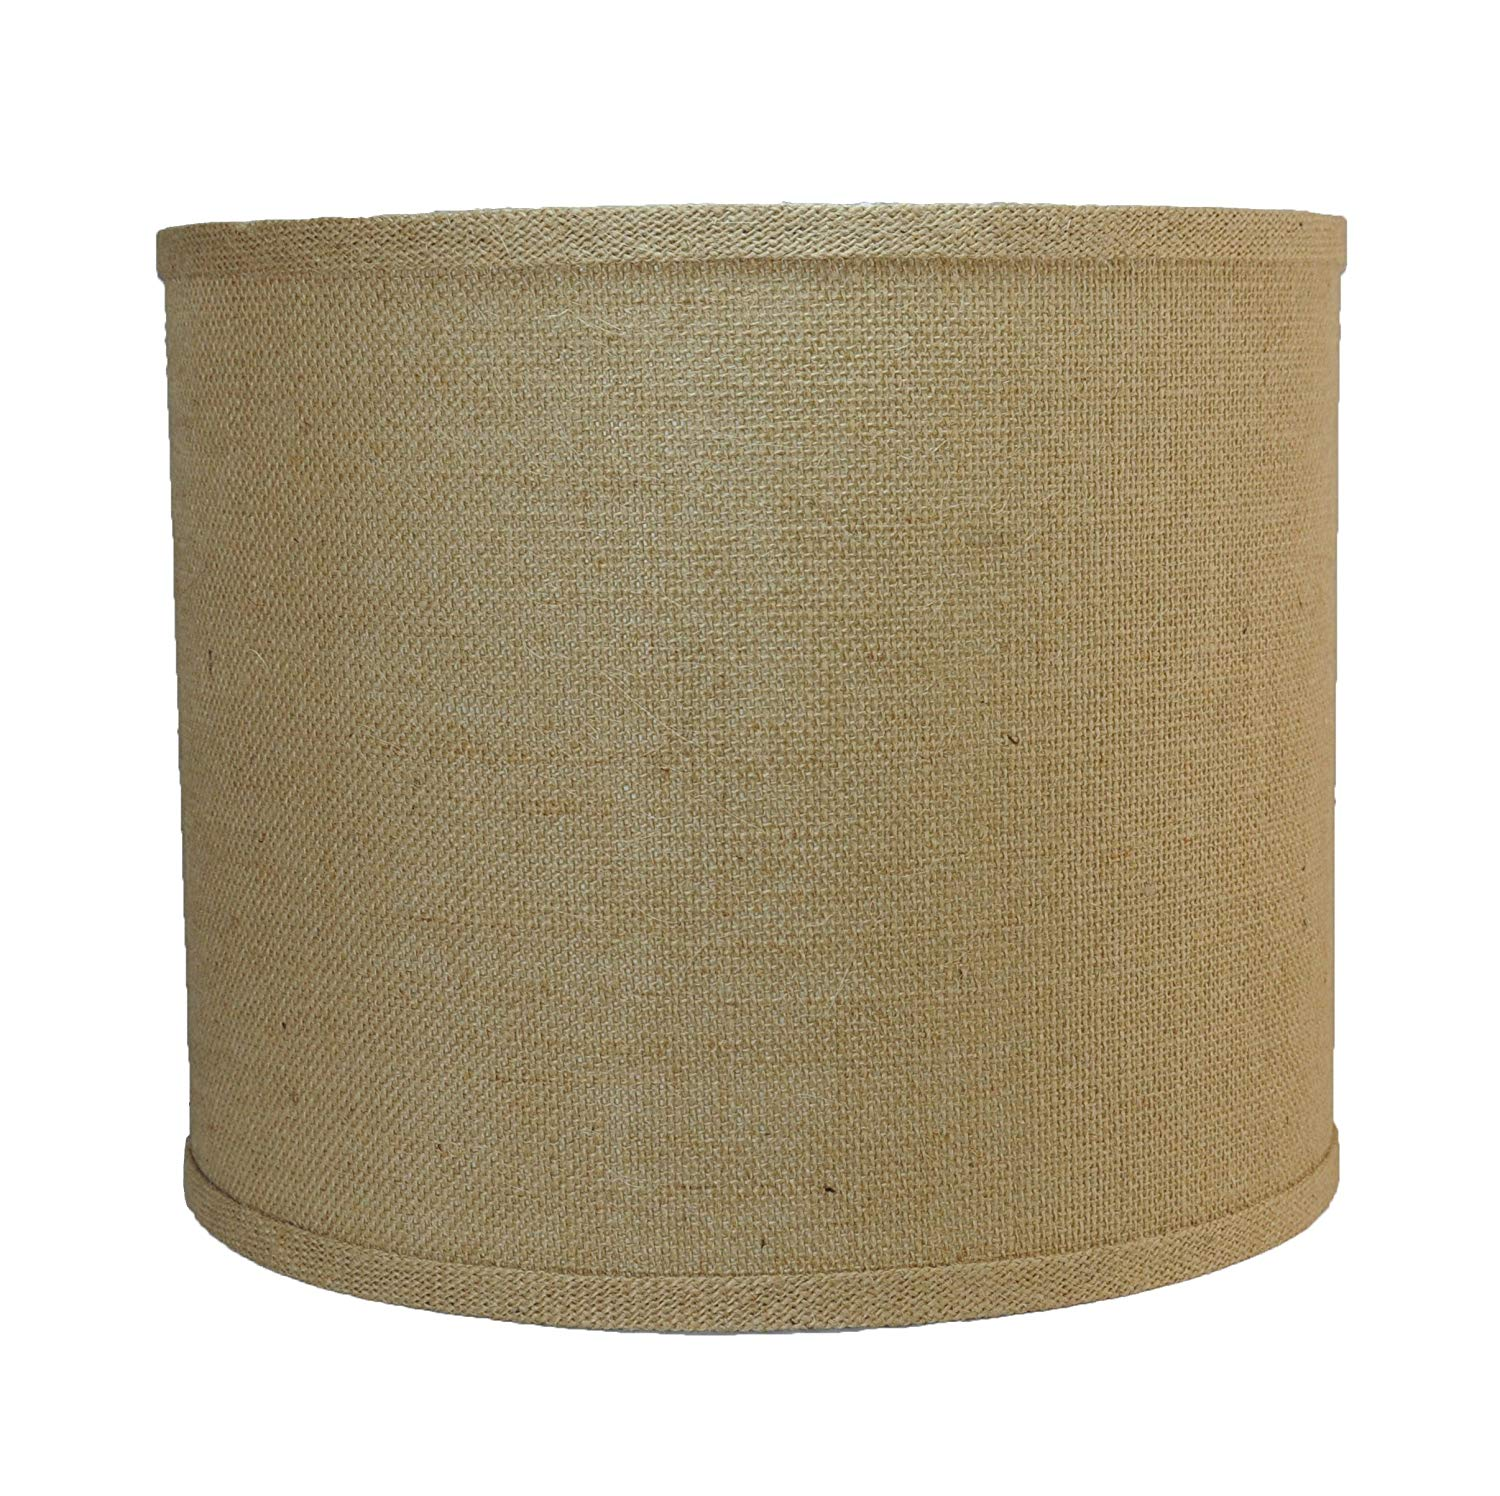 Urbanest Burlap Drum Lamp Shade, 12-inch By 12-inch By 10-inch, Spider